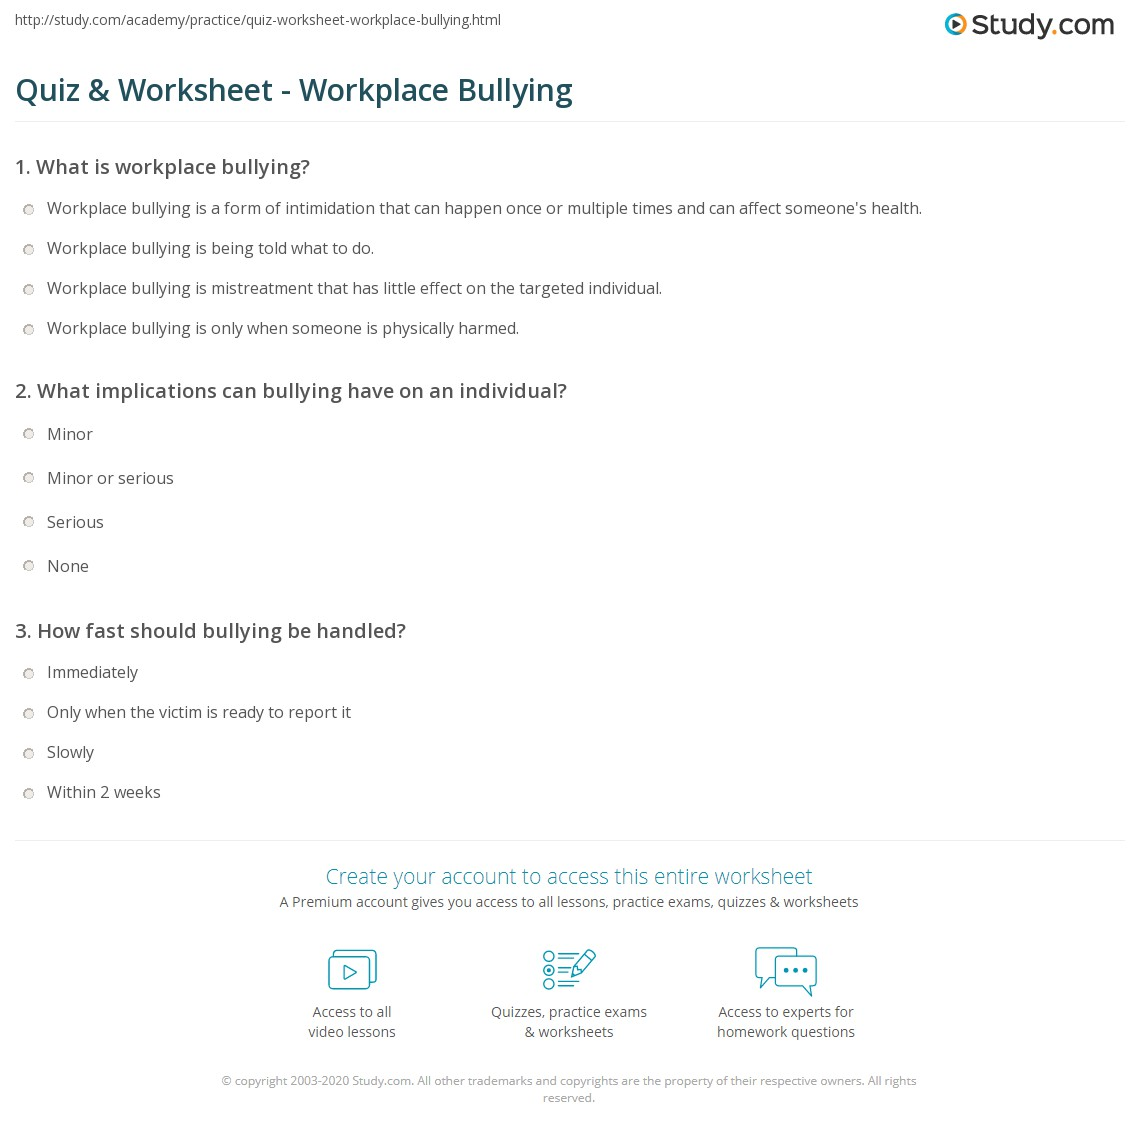 worksheet Bullying Worksheets quiz worksheet workplace bullying study com print in the worksheet